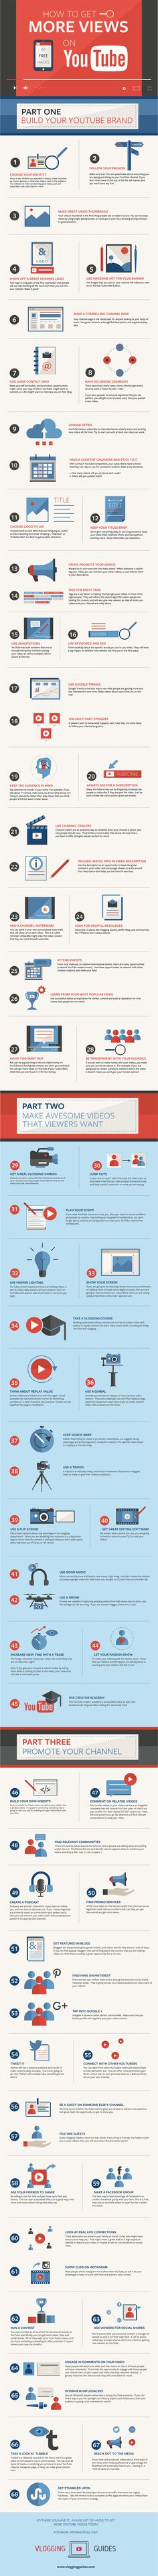 68 Ways to Get More Views on YouTube [Infographic] | Social Media Today